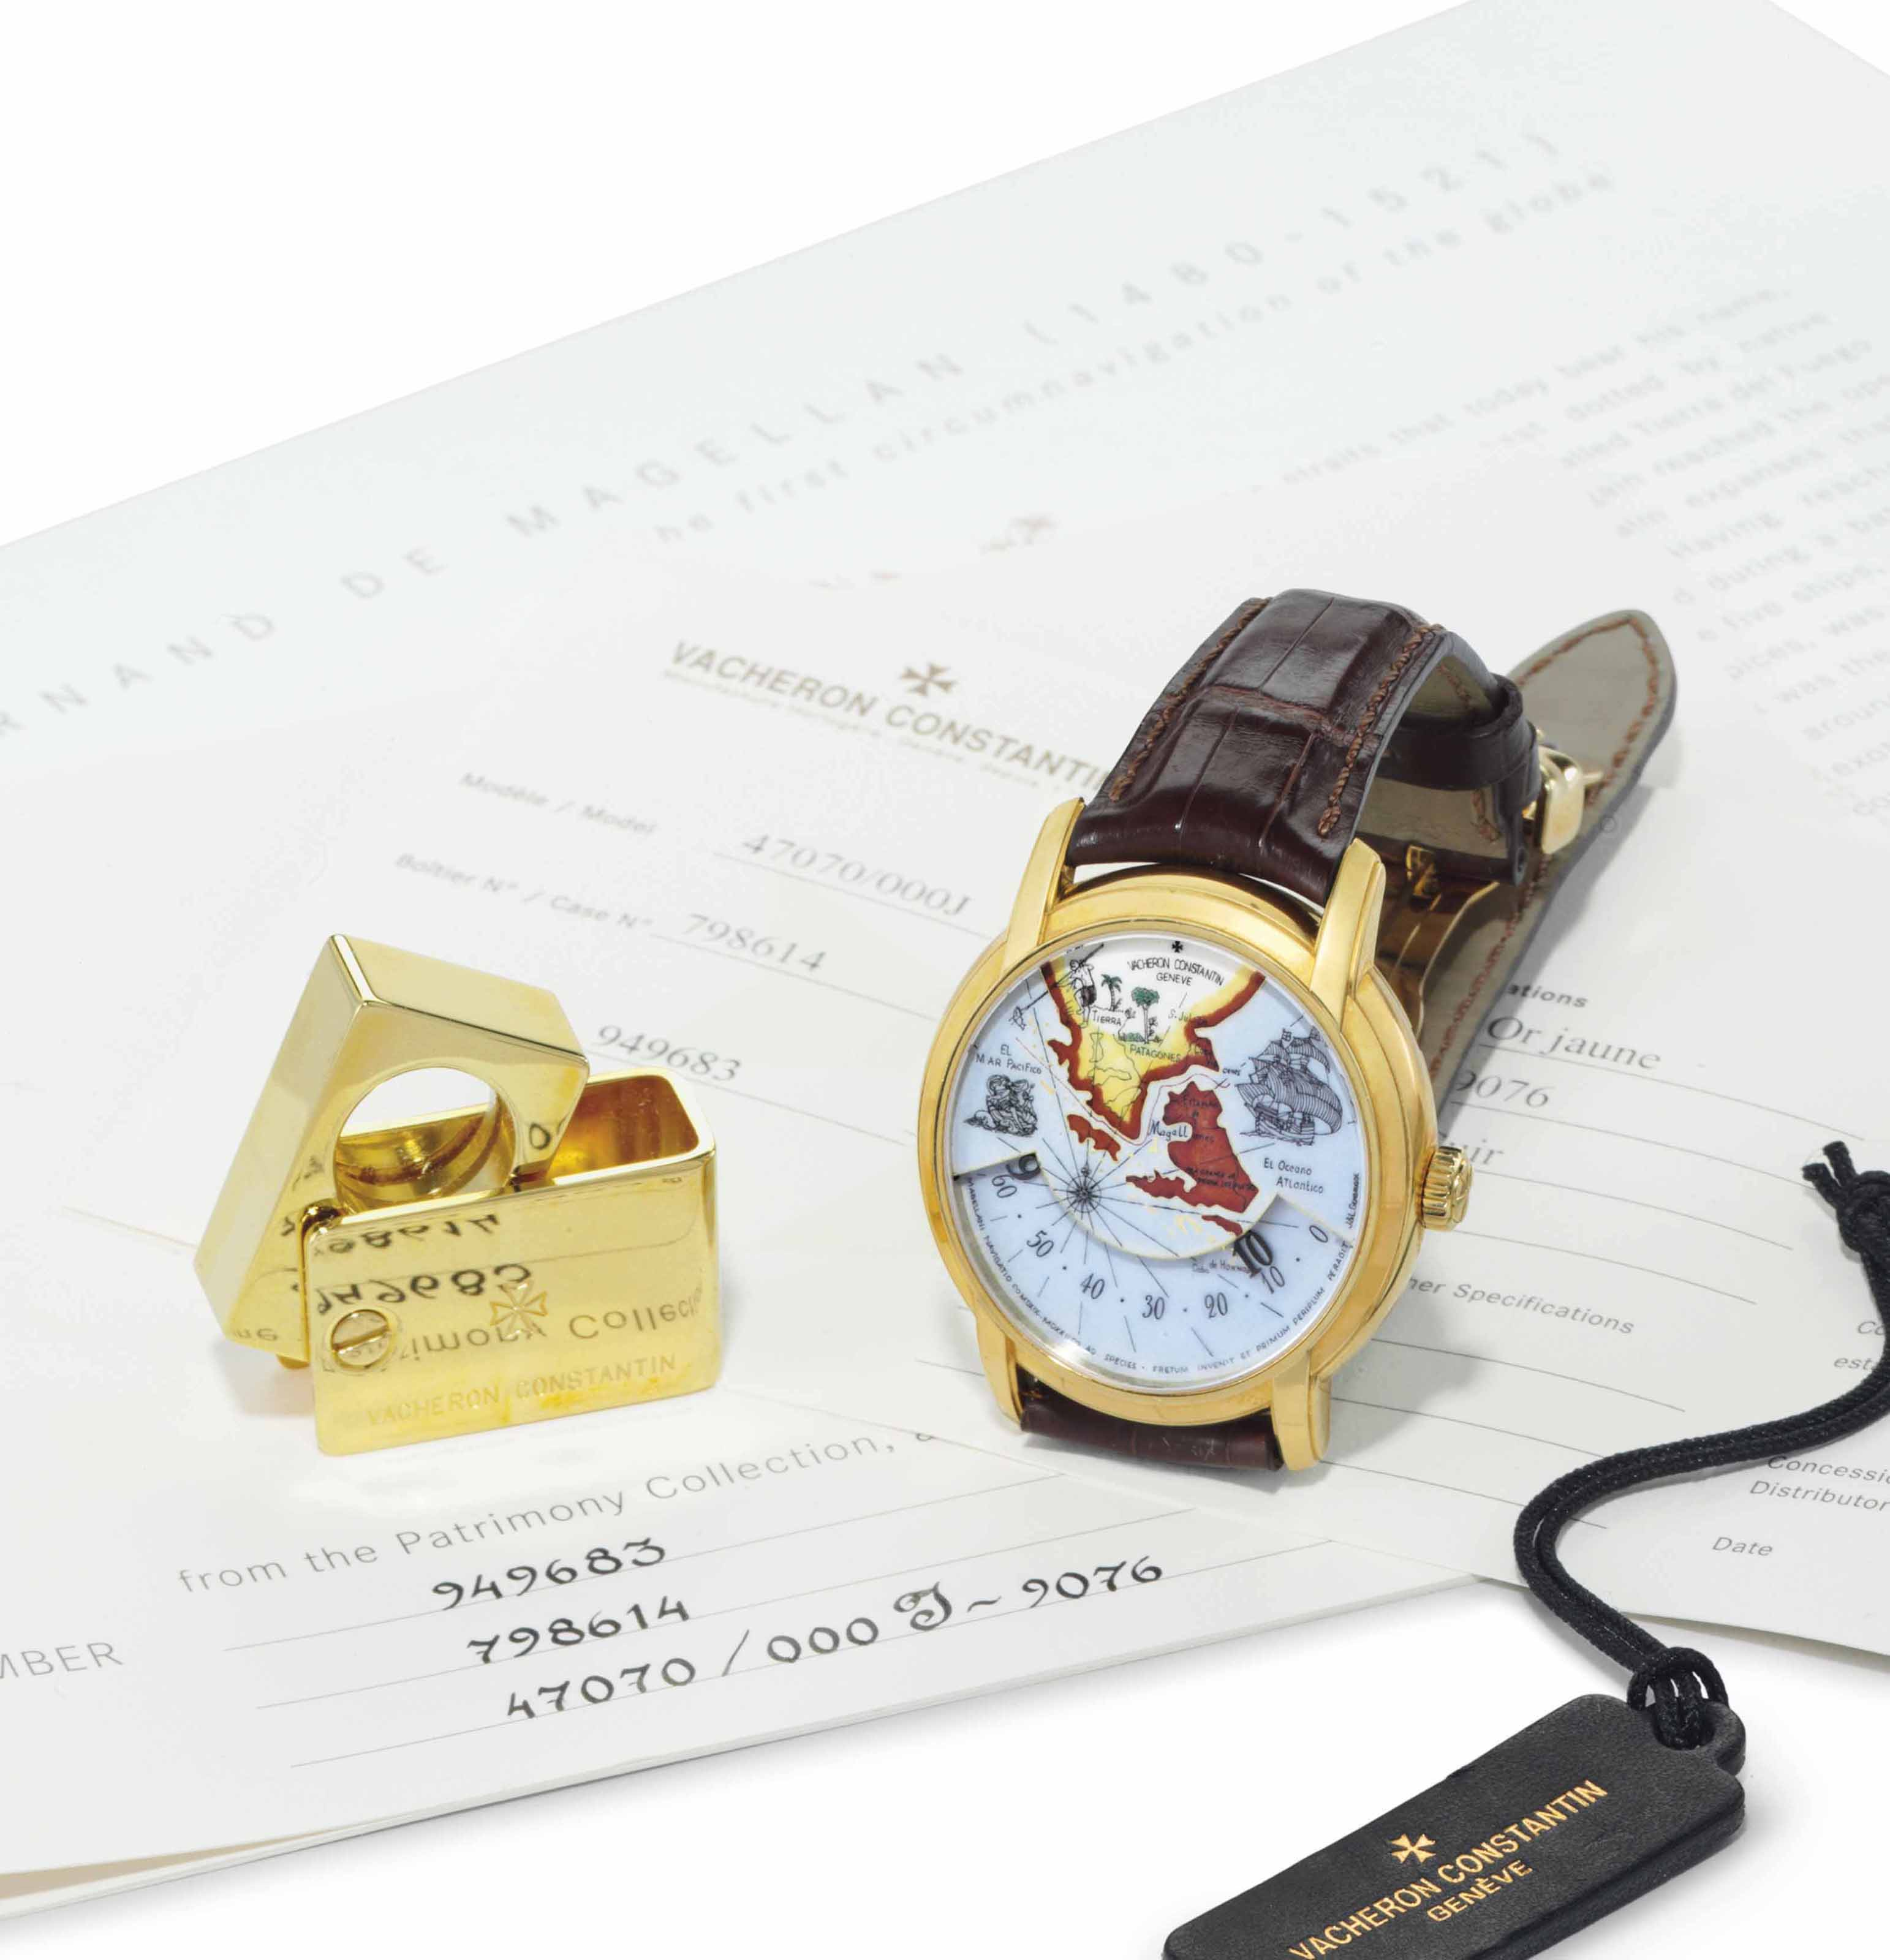 Vacheron Constantin. A Fine 18k Gold Limited Edition Automatic Wristwatch with Geographic Enamel Dial, Wandering Hours and Power Reserve